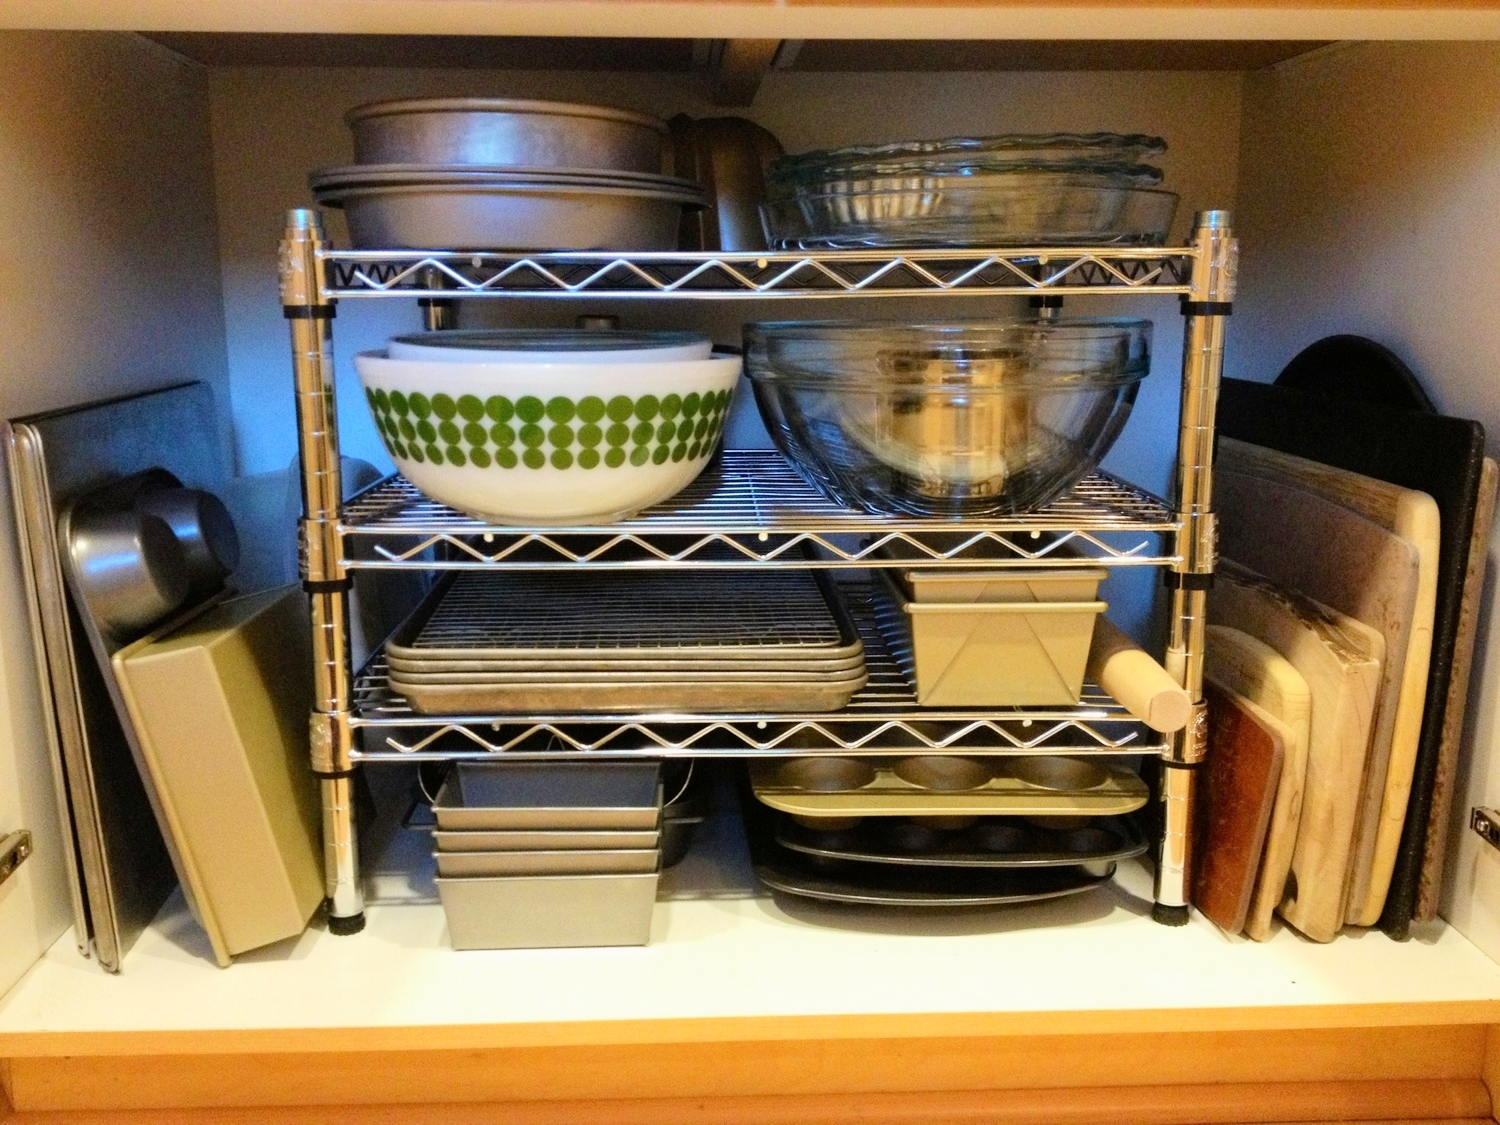 My baking center in my own kitchen is organized with items I use most frequently in the front, while other items are towards the back.